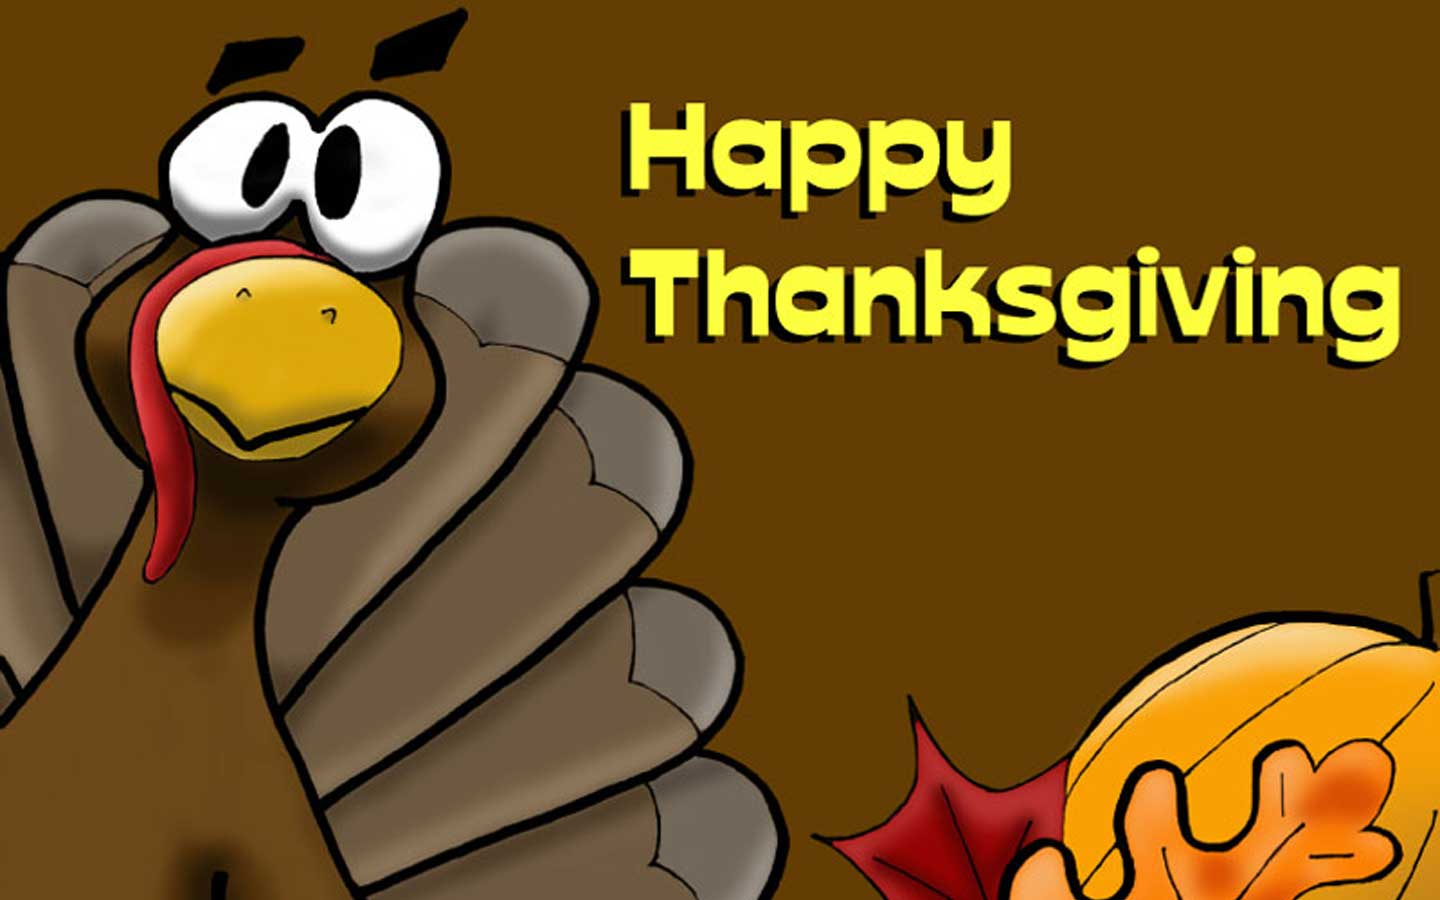 Funny Thanksgiving HD Wallpapers for iPhone iPhone Wallpapers Site 1440x900